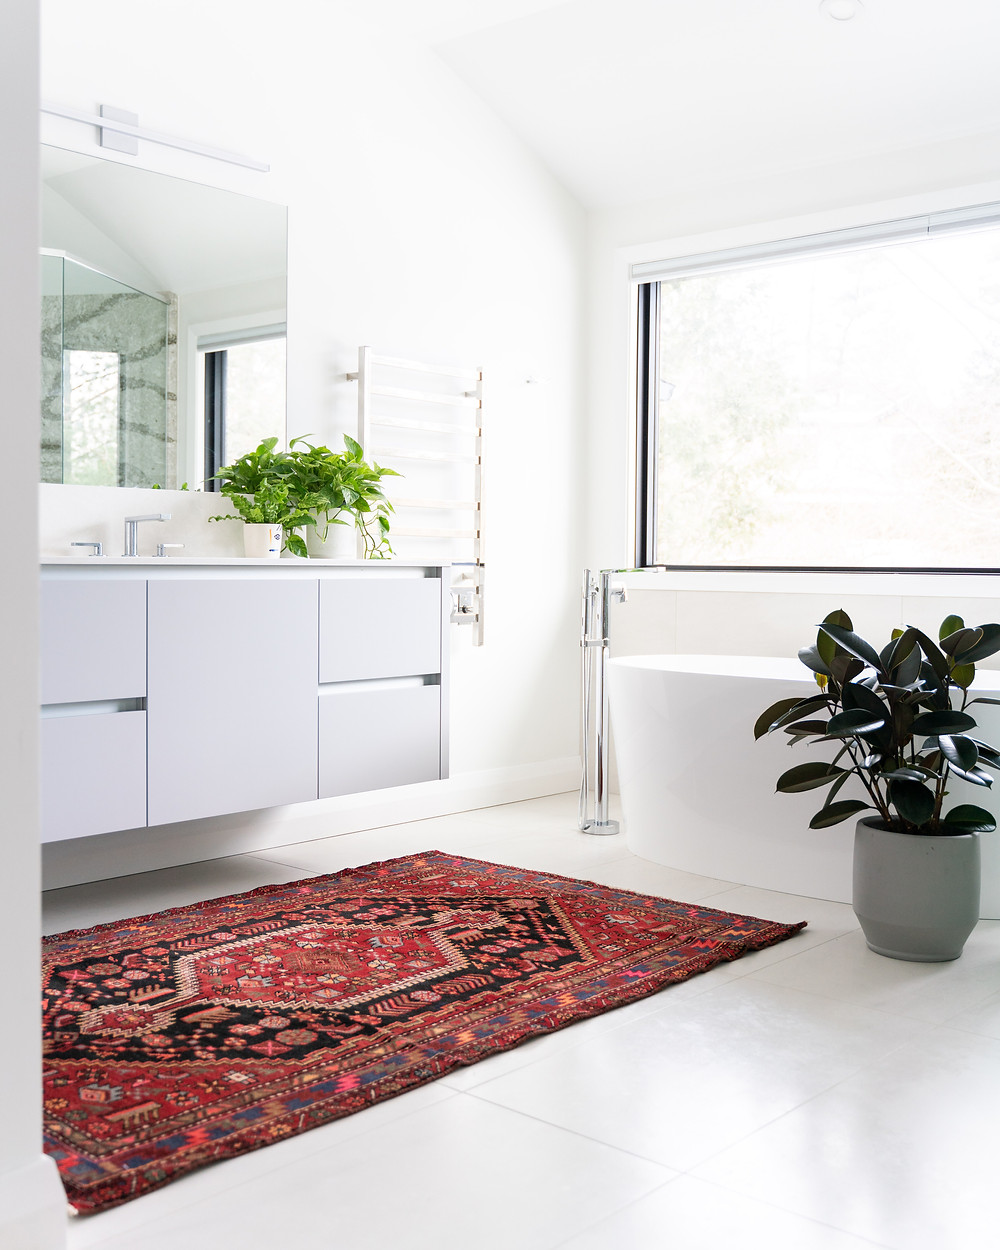 Bathroom with traditional rug design